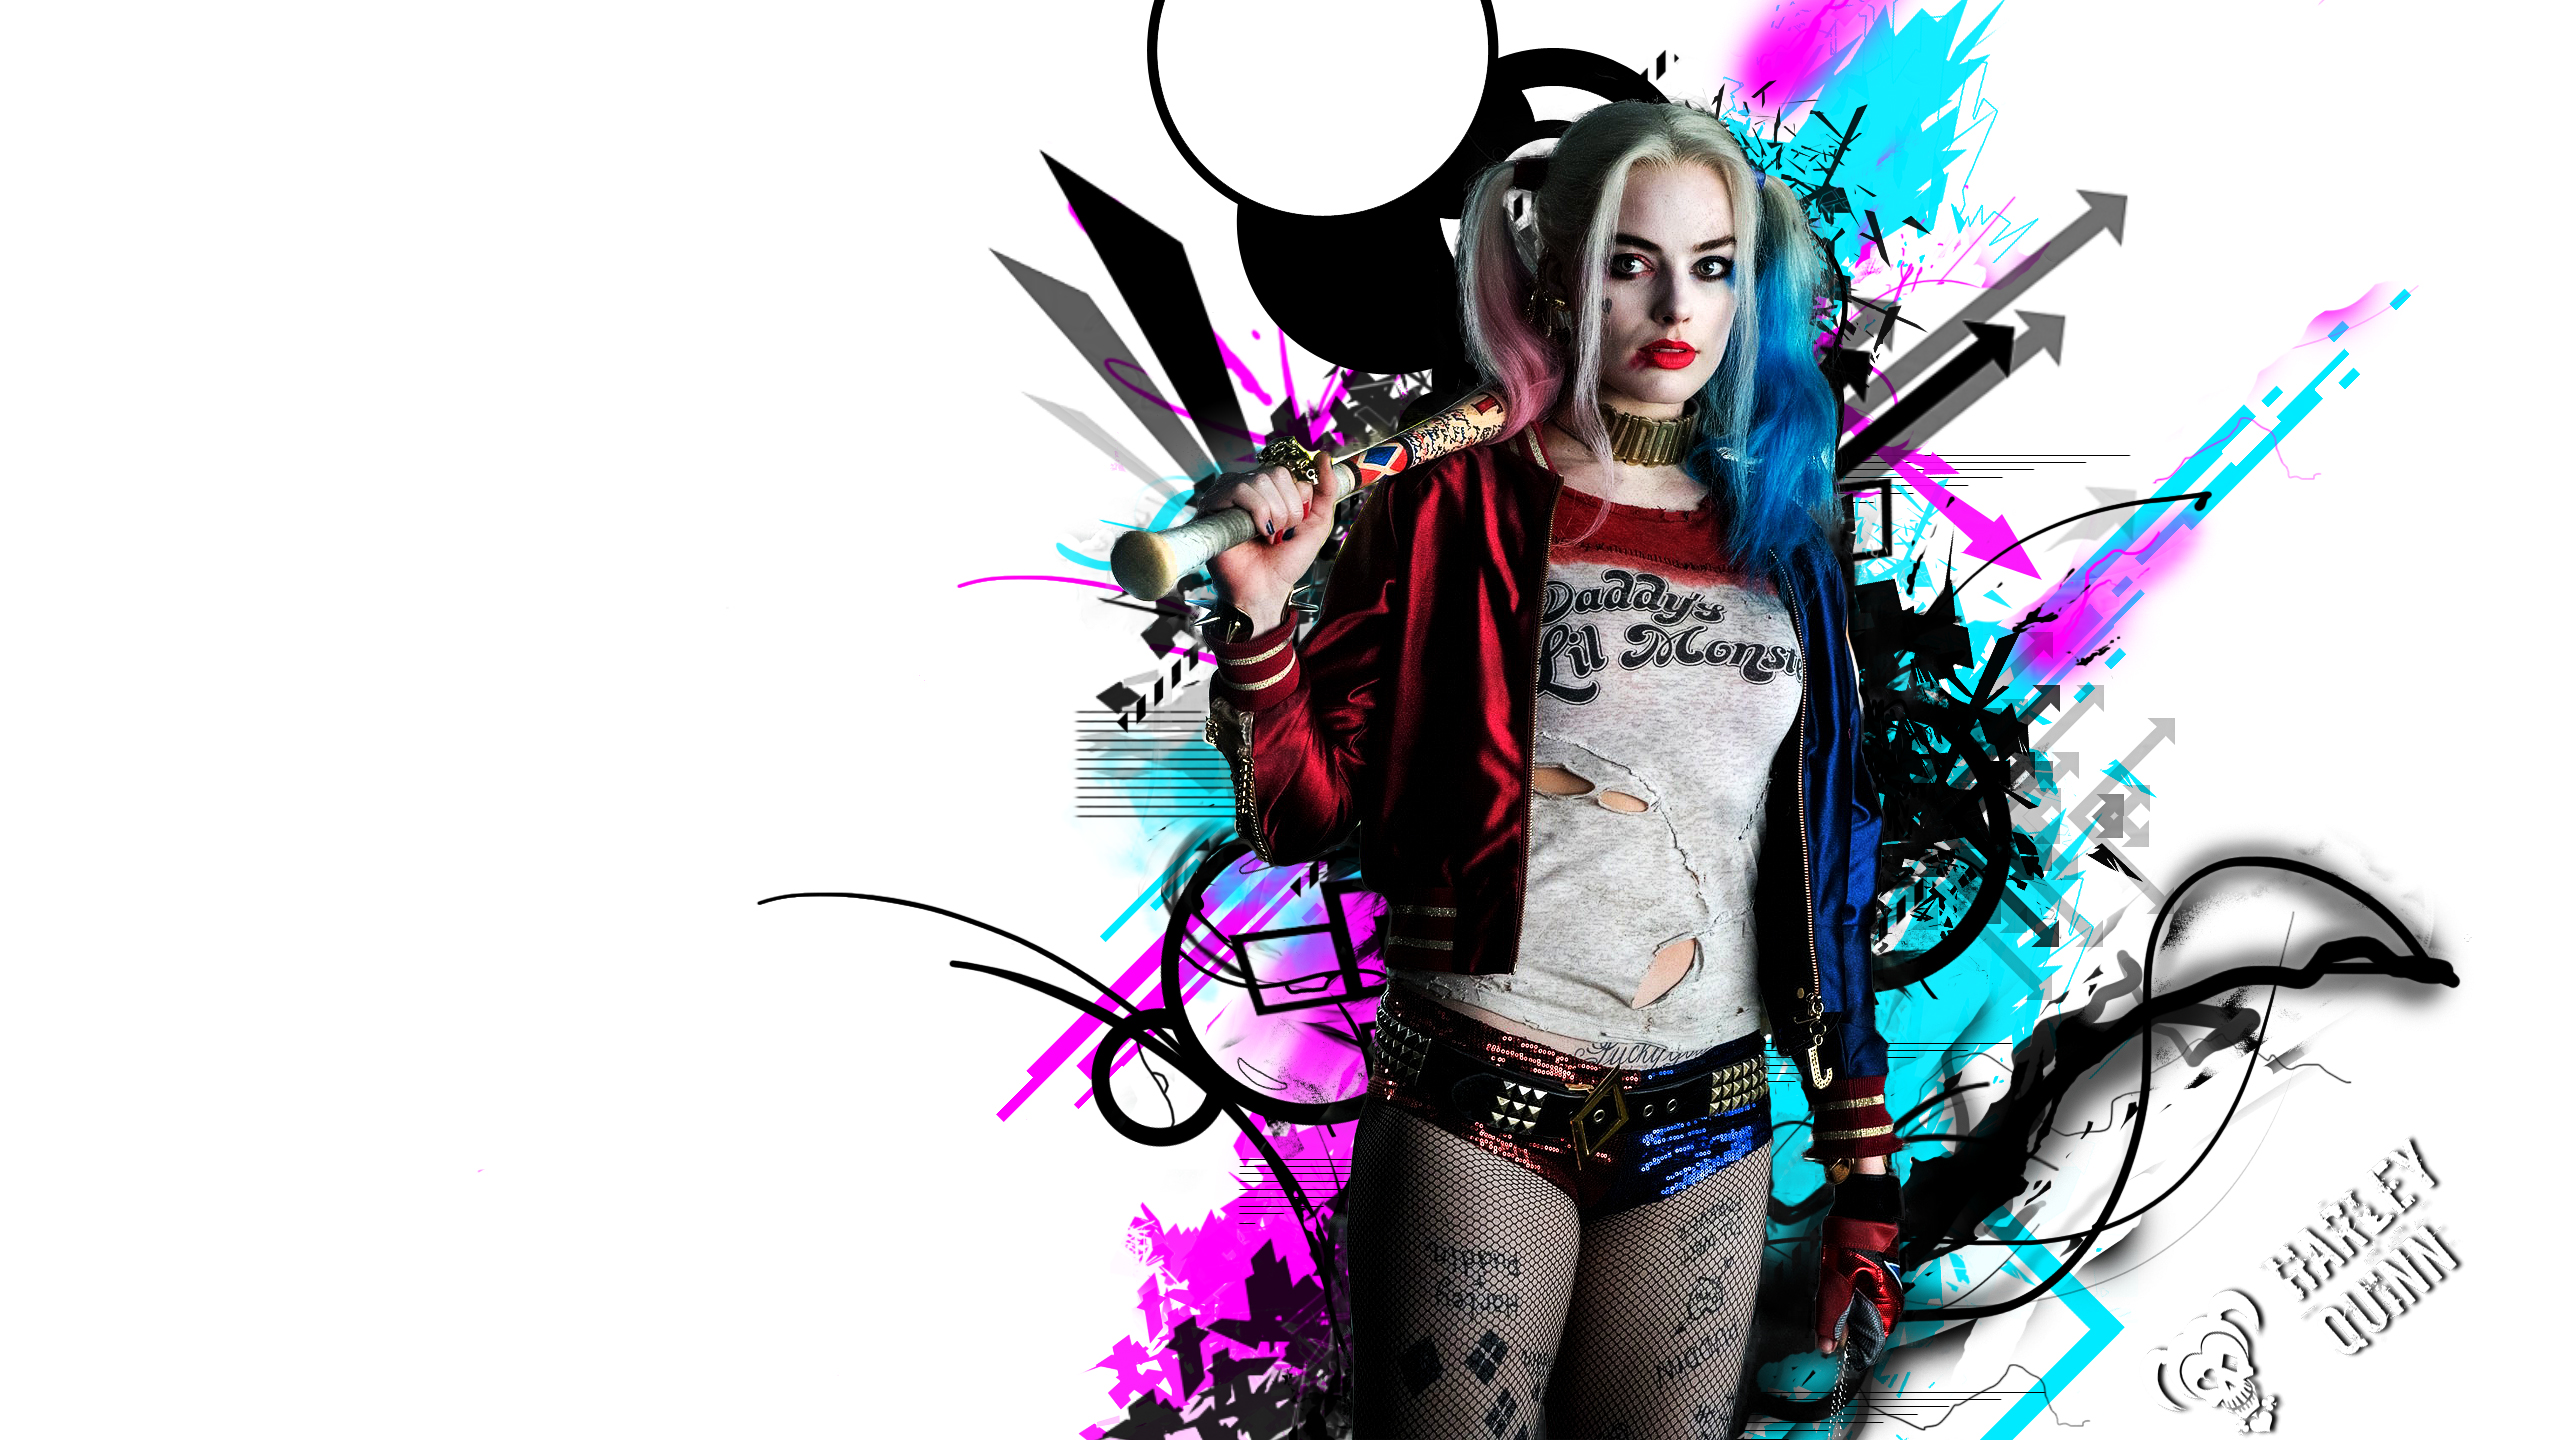 1400x900 Harley Quinn Hd 1400x900 Resolution Hd 4k Wallpapers Images Backgrounds Photos And Pictures